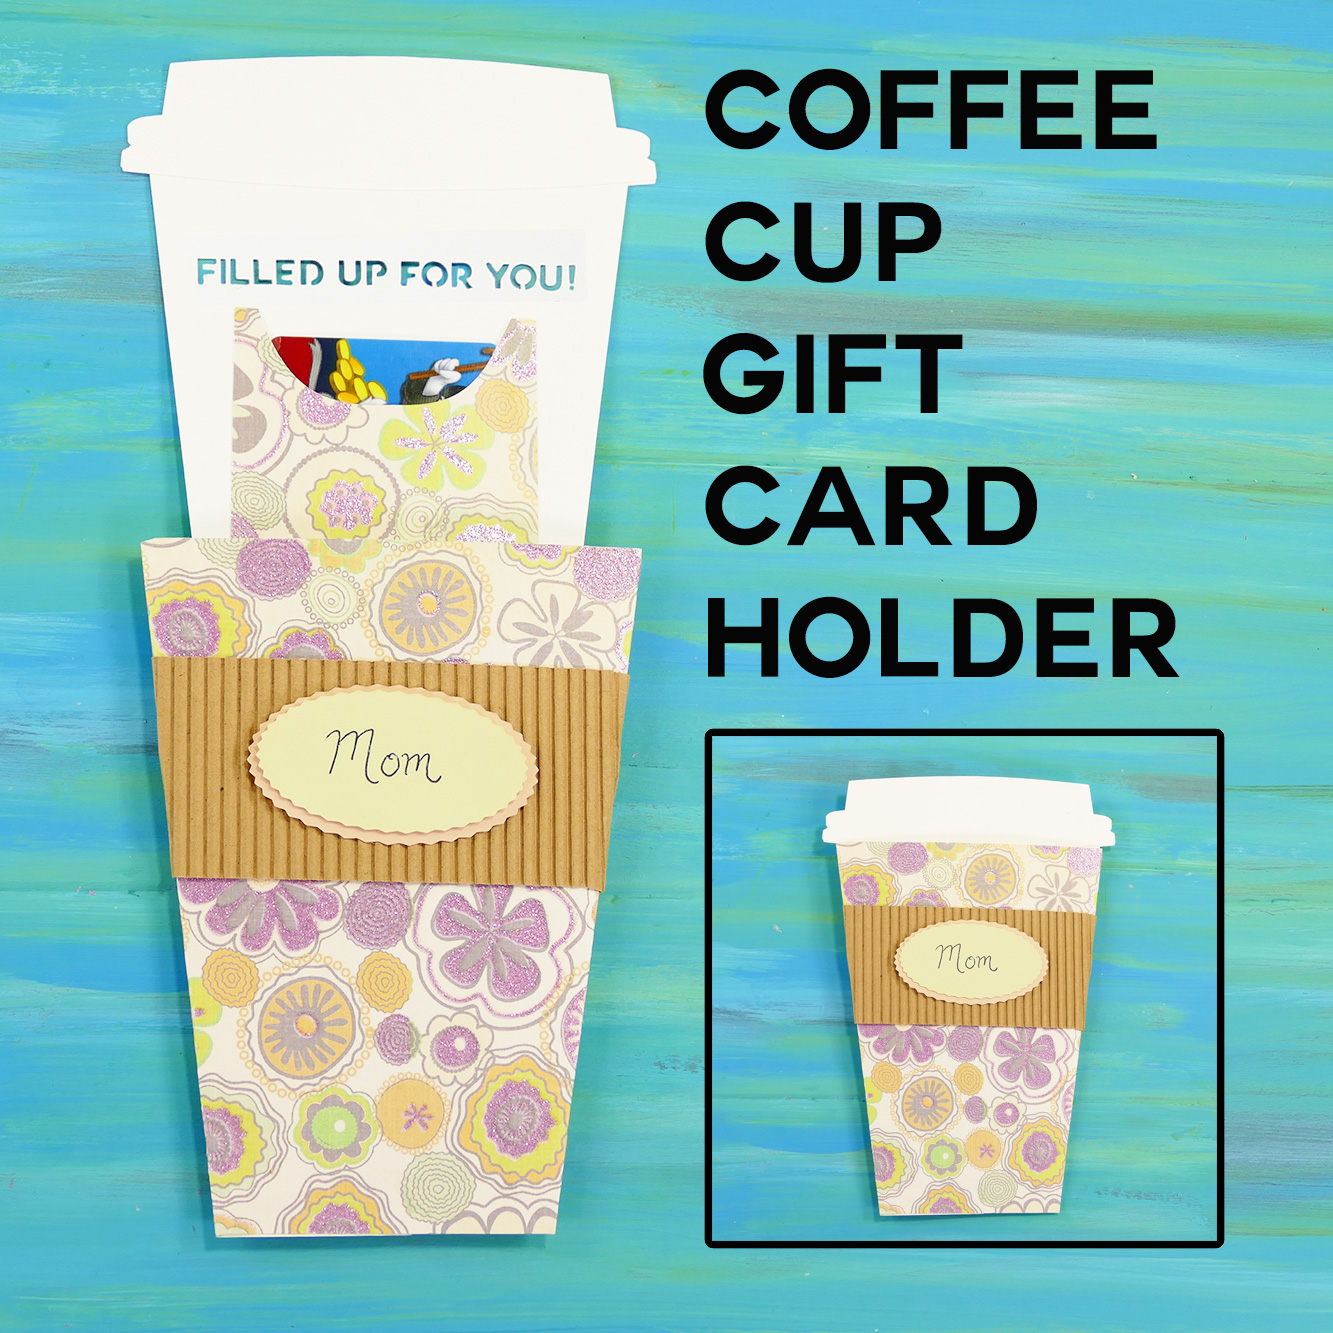 Take-Out Coffee Cup Gift Card Holder - Jennifer Maker